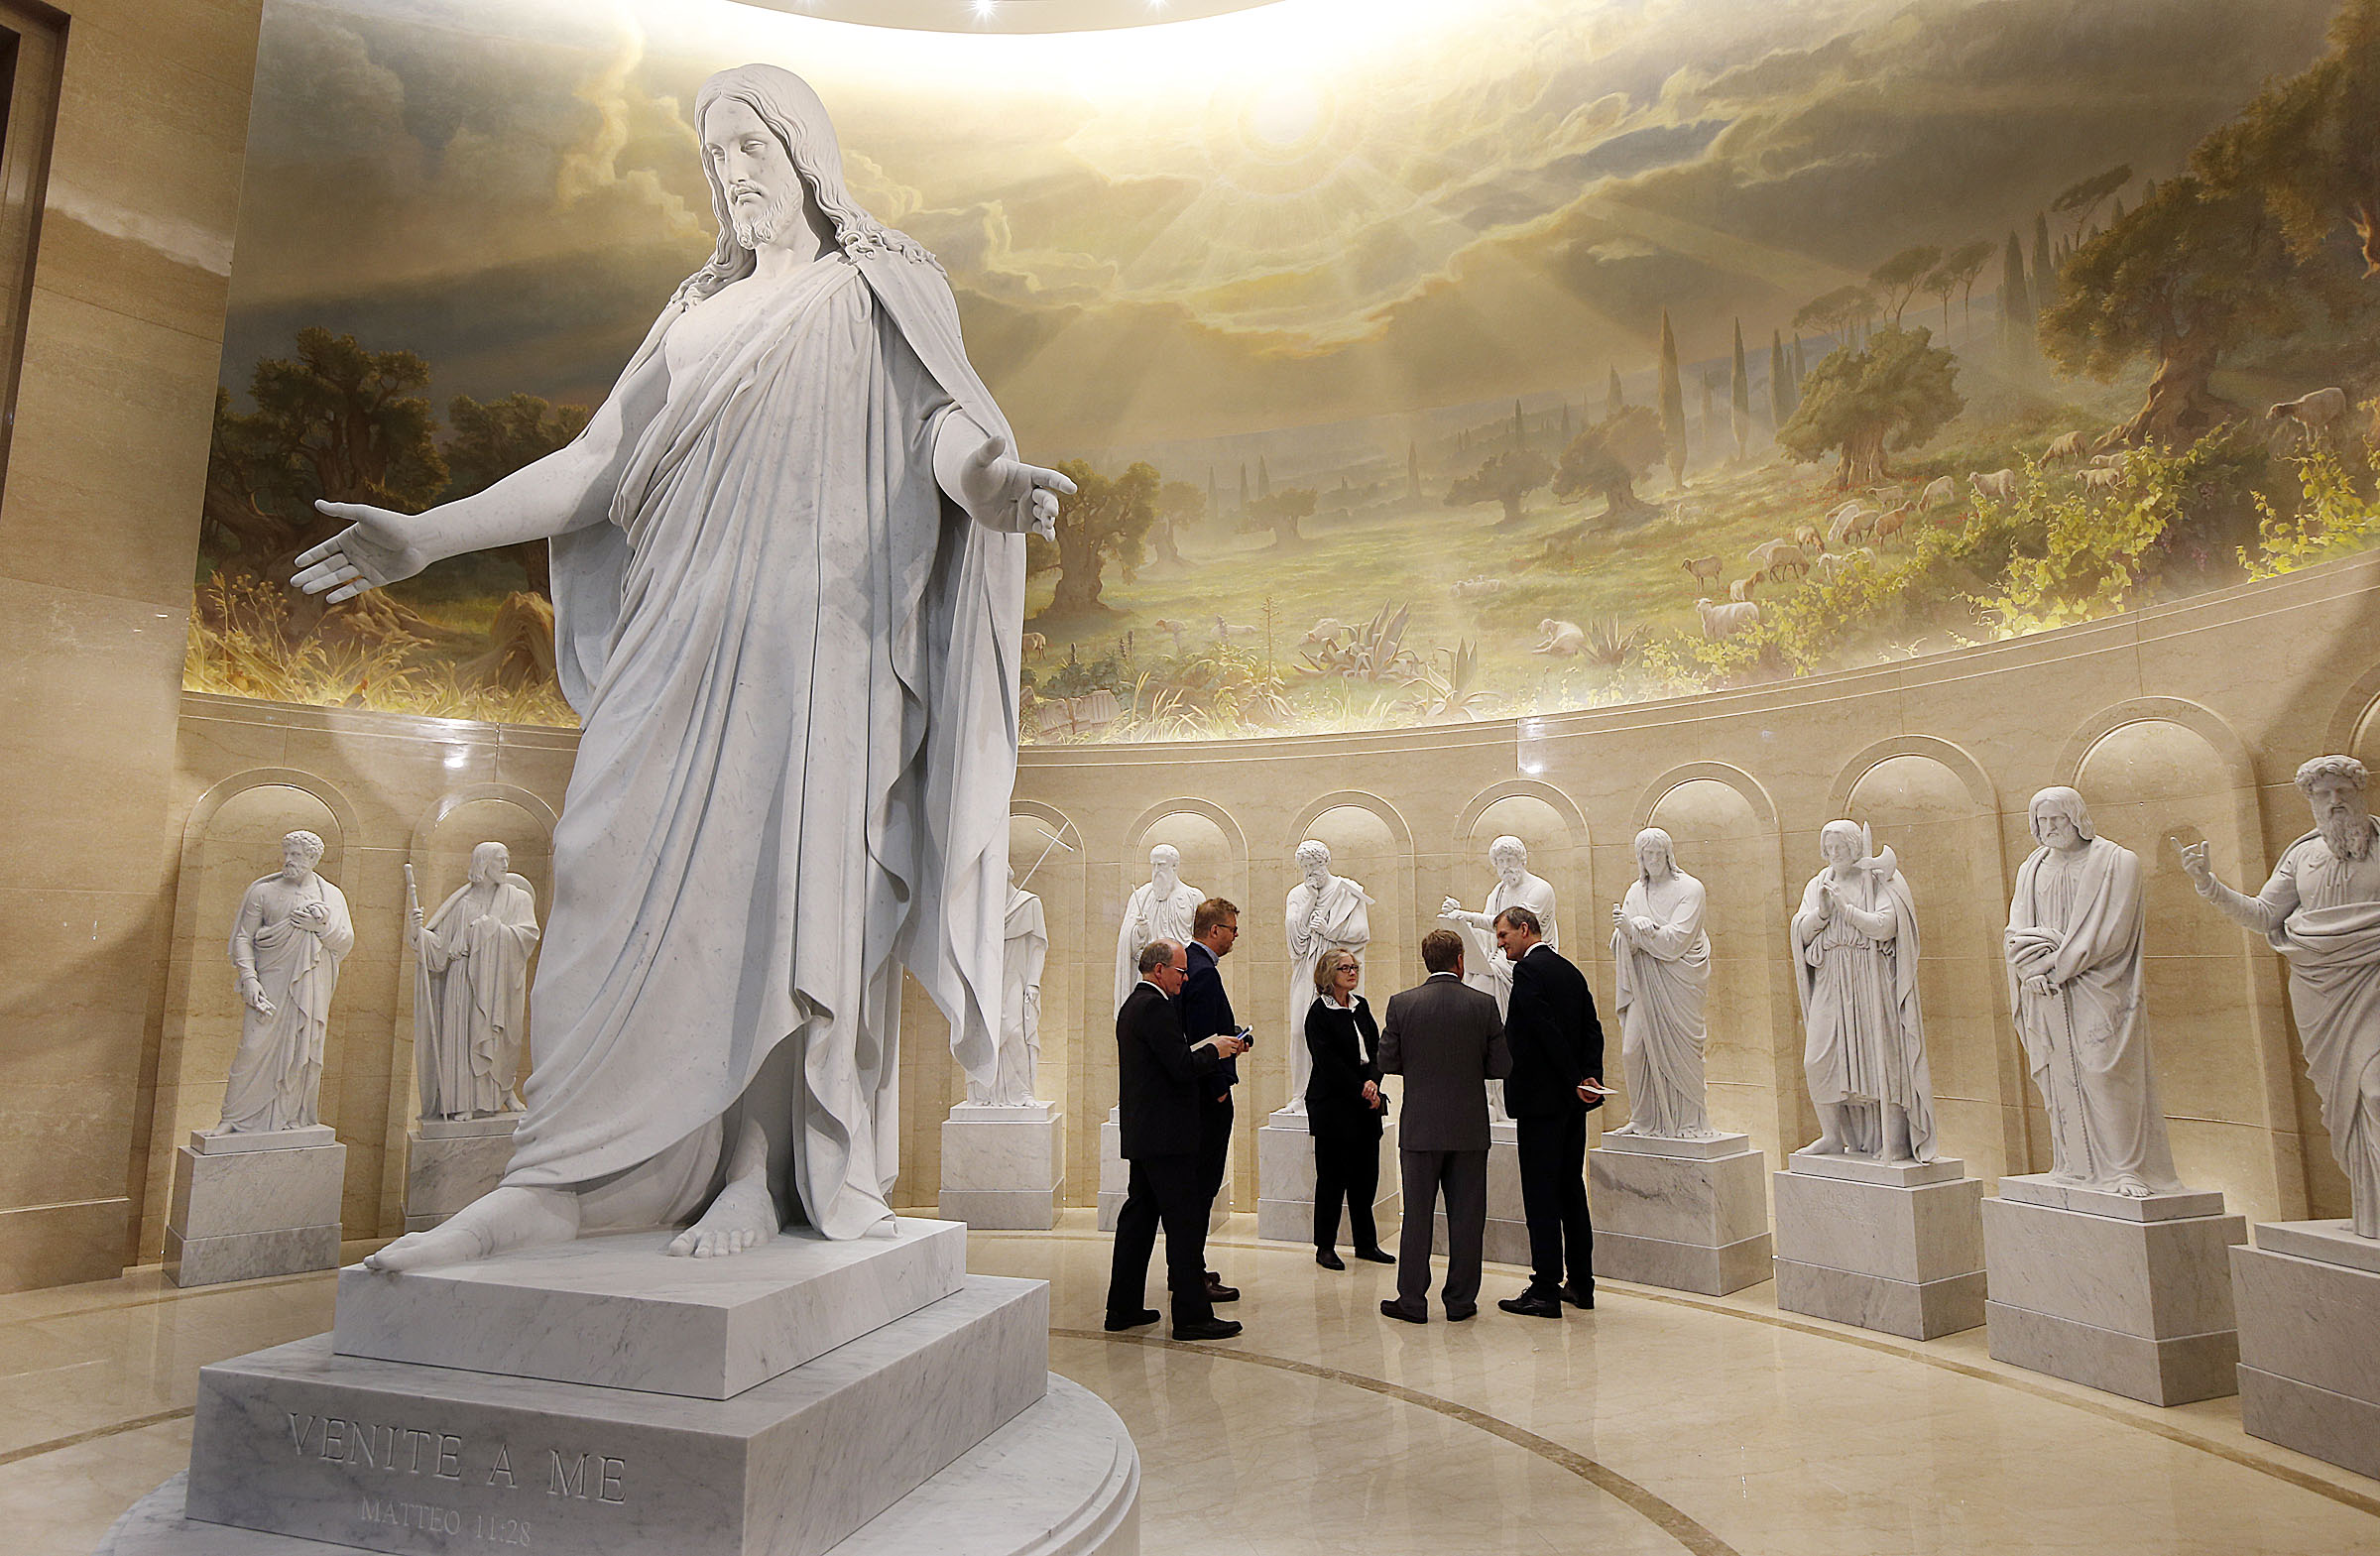 A delegation from Copenhagen's Church of Our Lady, home of the original Thorvaldsen statues of the Christus and ancient 12 apostles visit the Rome Temple Visitors's Center to see the digital, 3-D, marble replicas and talk with the temple's architect in Rome, Italy on Wednesday, Jan. 16, 2019.